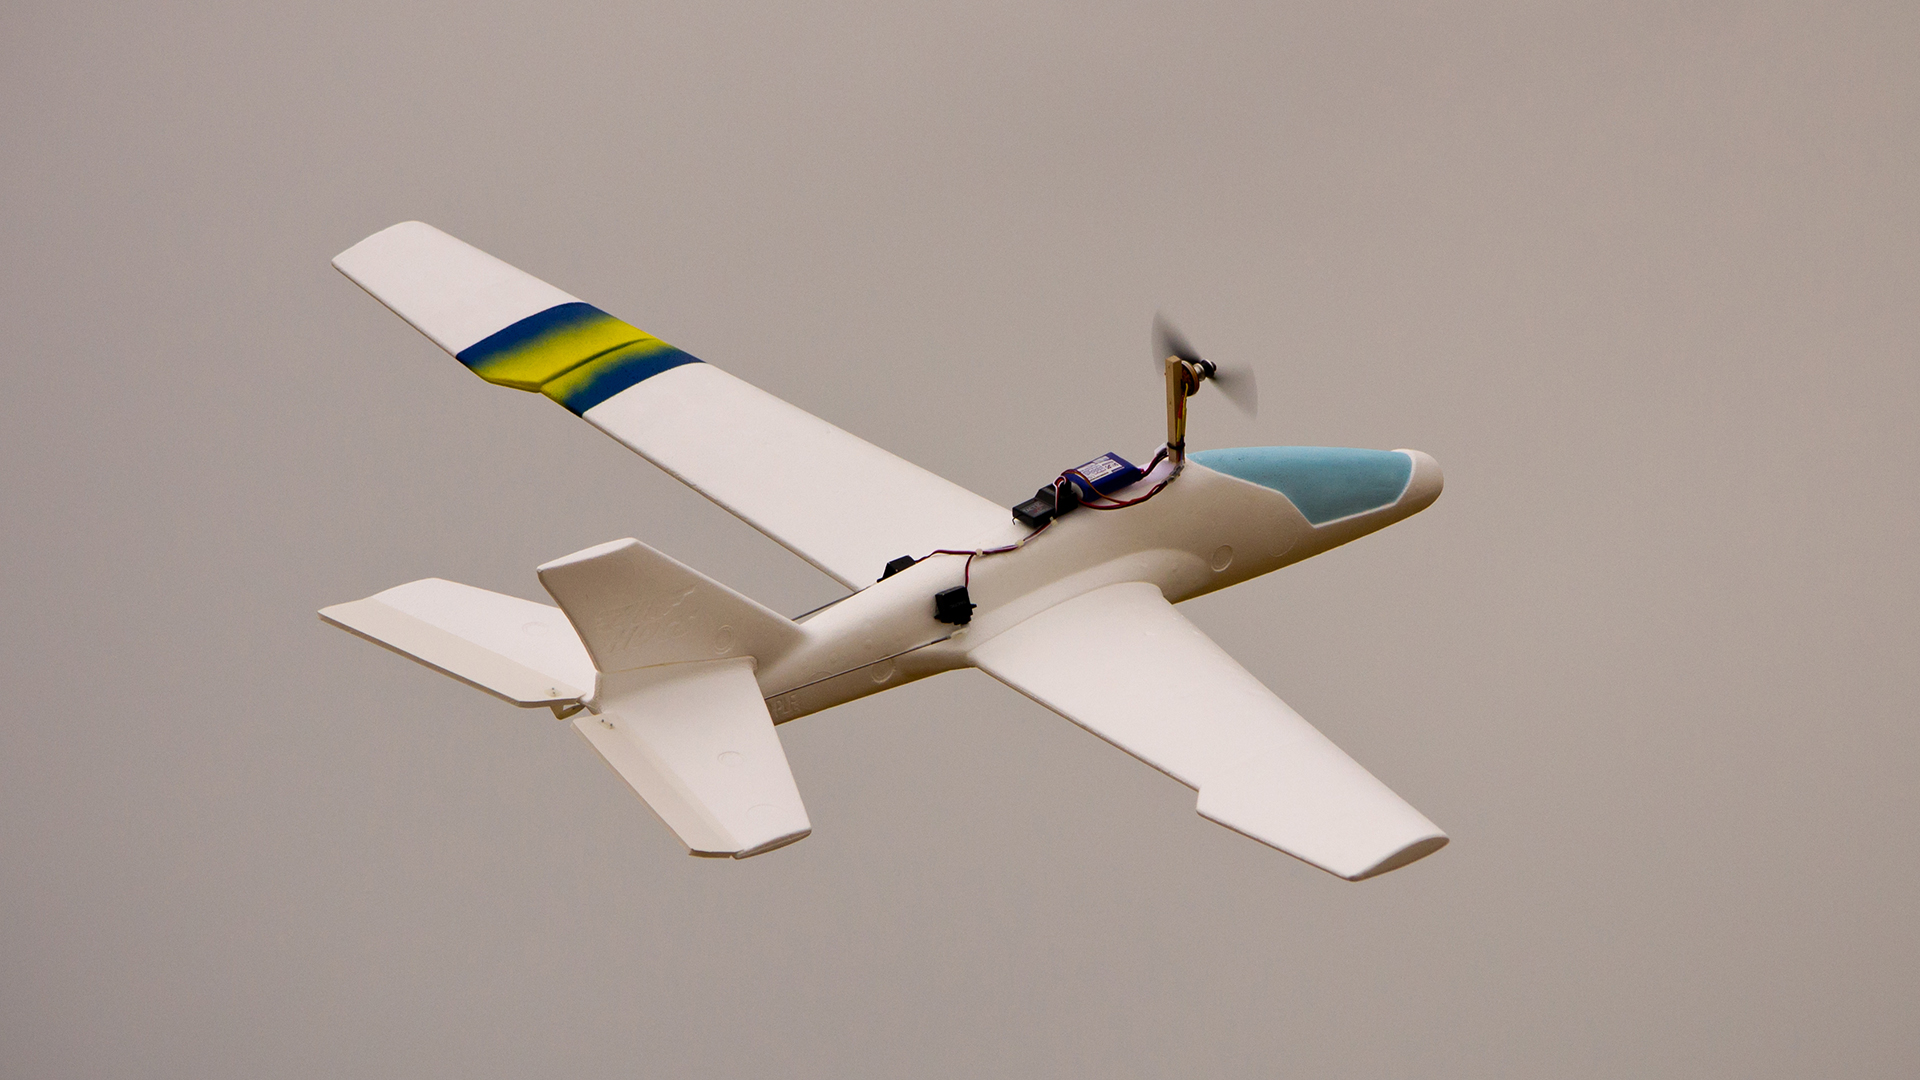 Building A Cheap RC Glider Airplane – Part 3: Adding Power - Tested